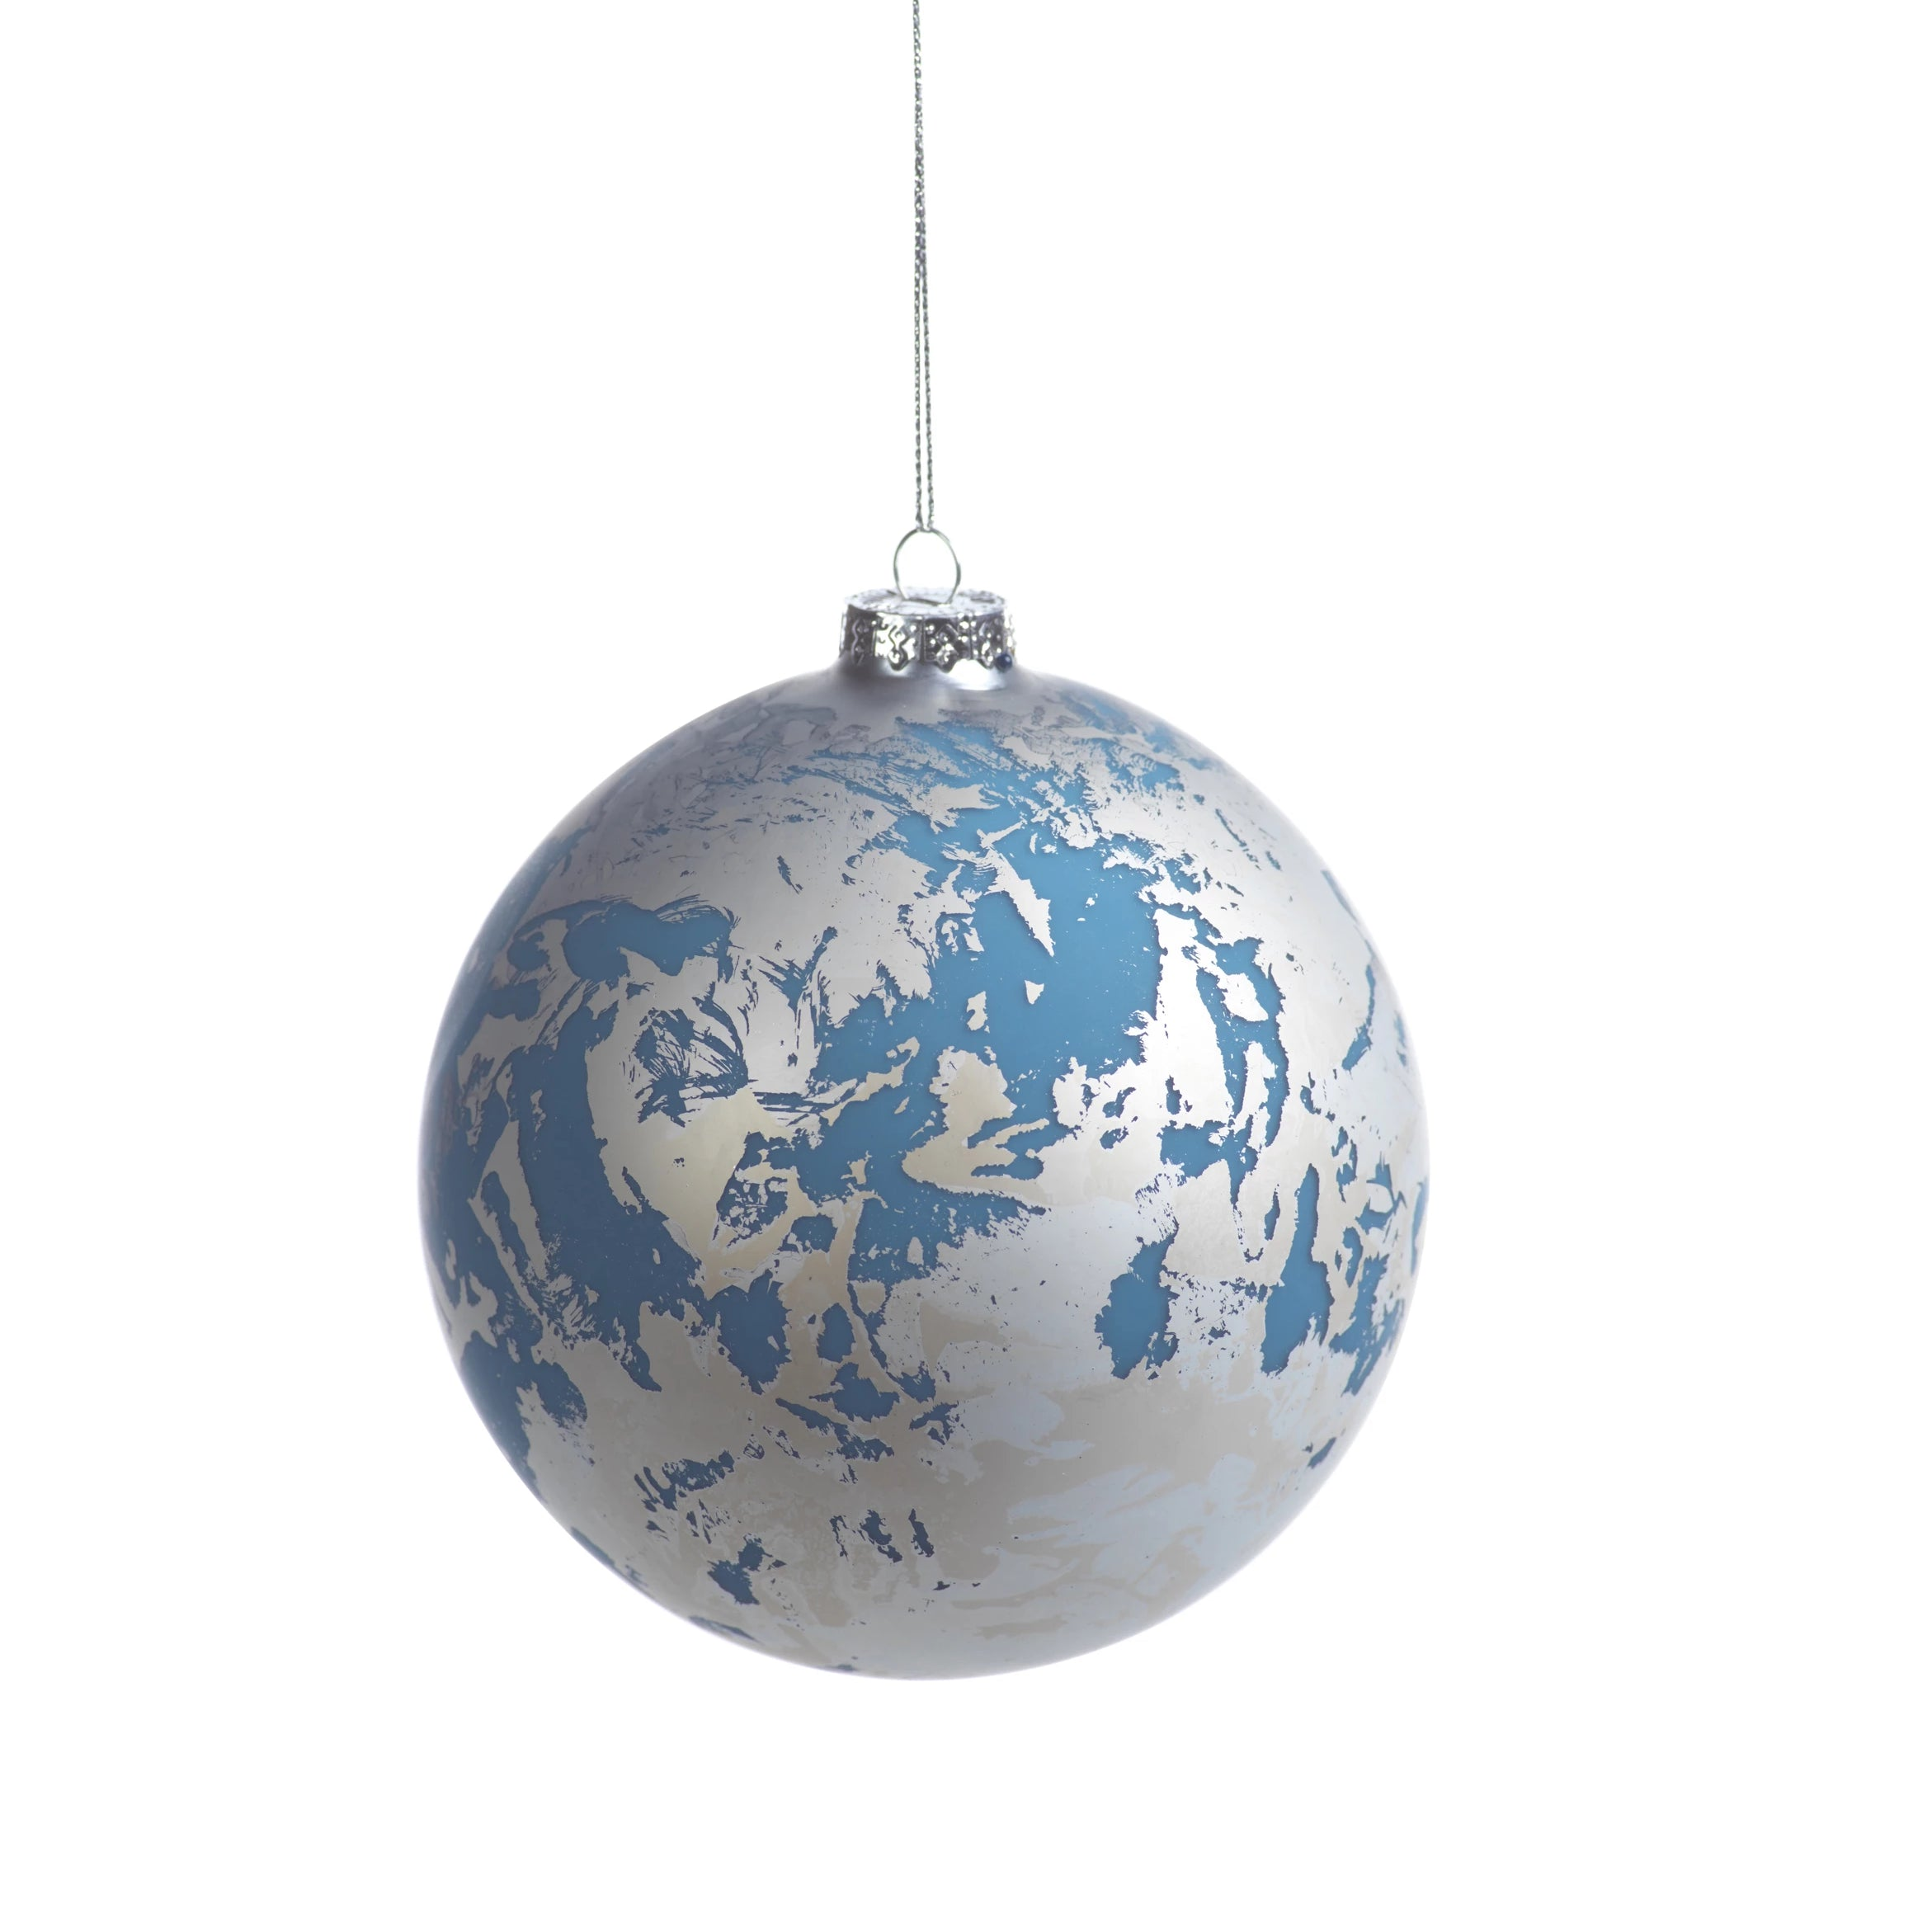 Patch Metallic Ornament - Silver& Blue - CARLYLE AVENUE